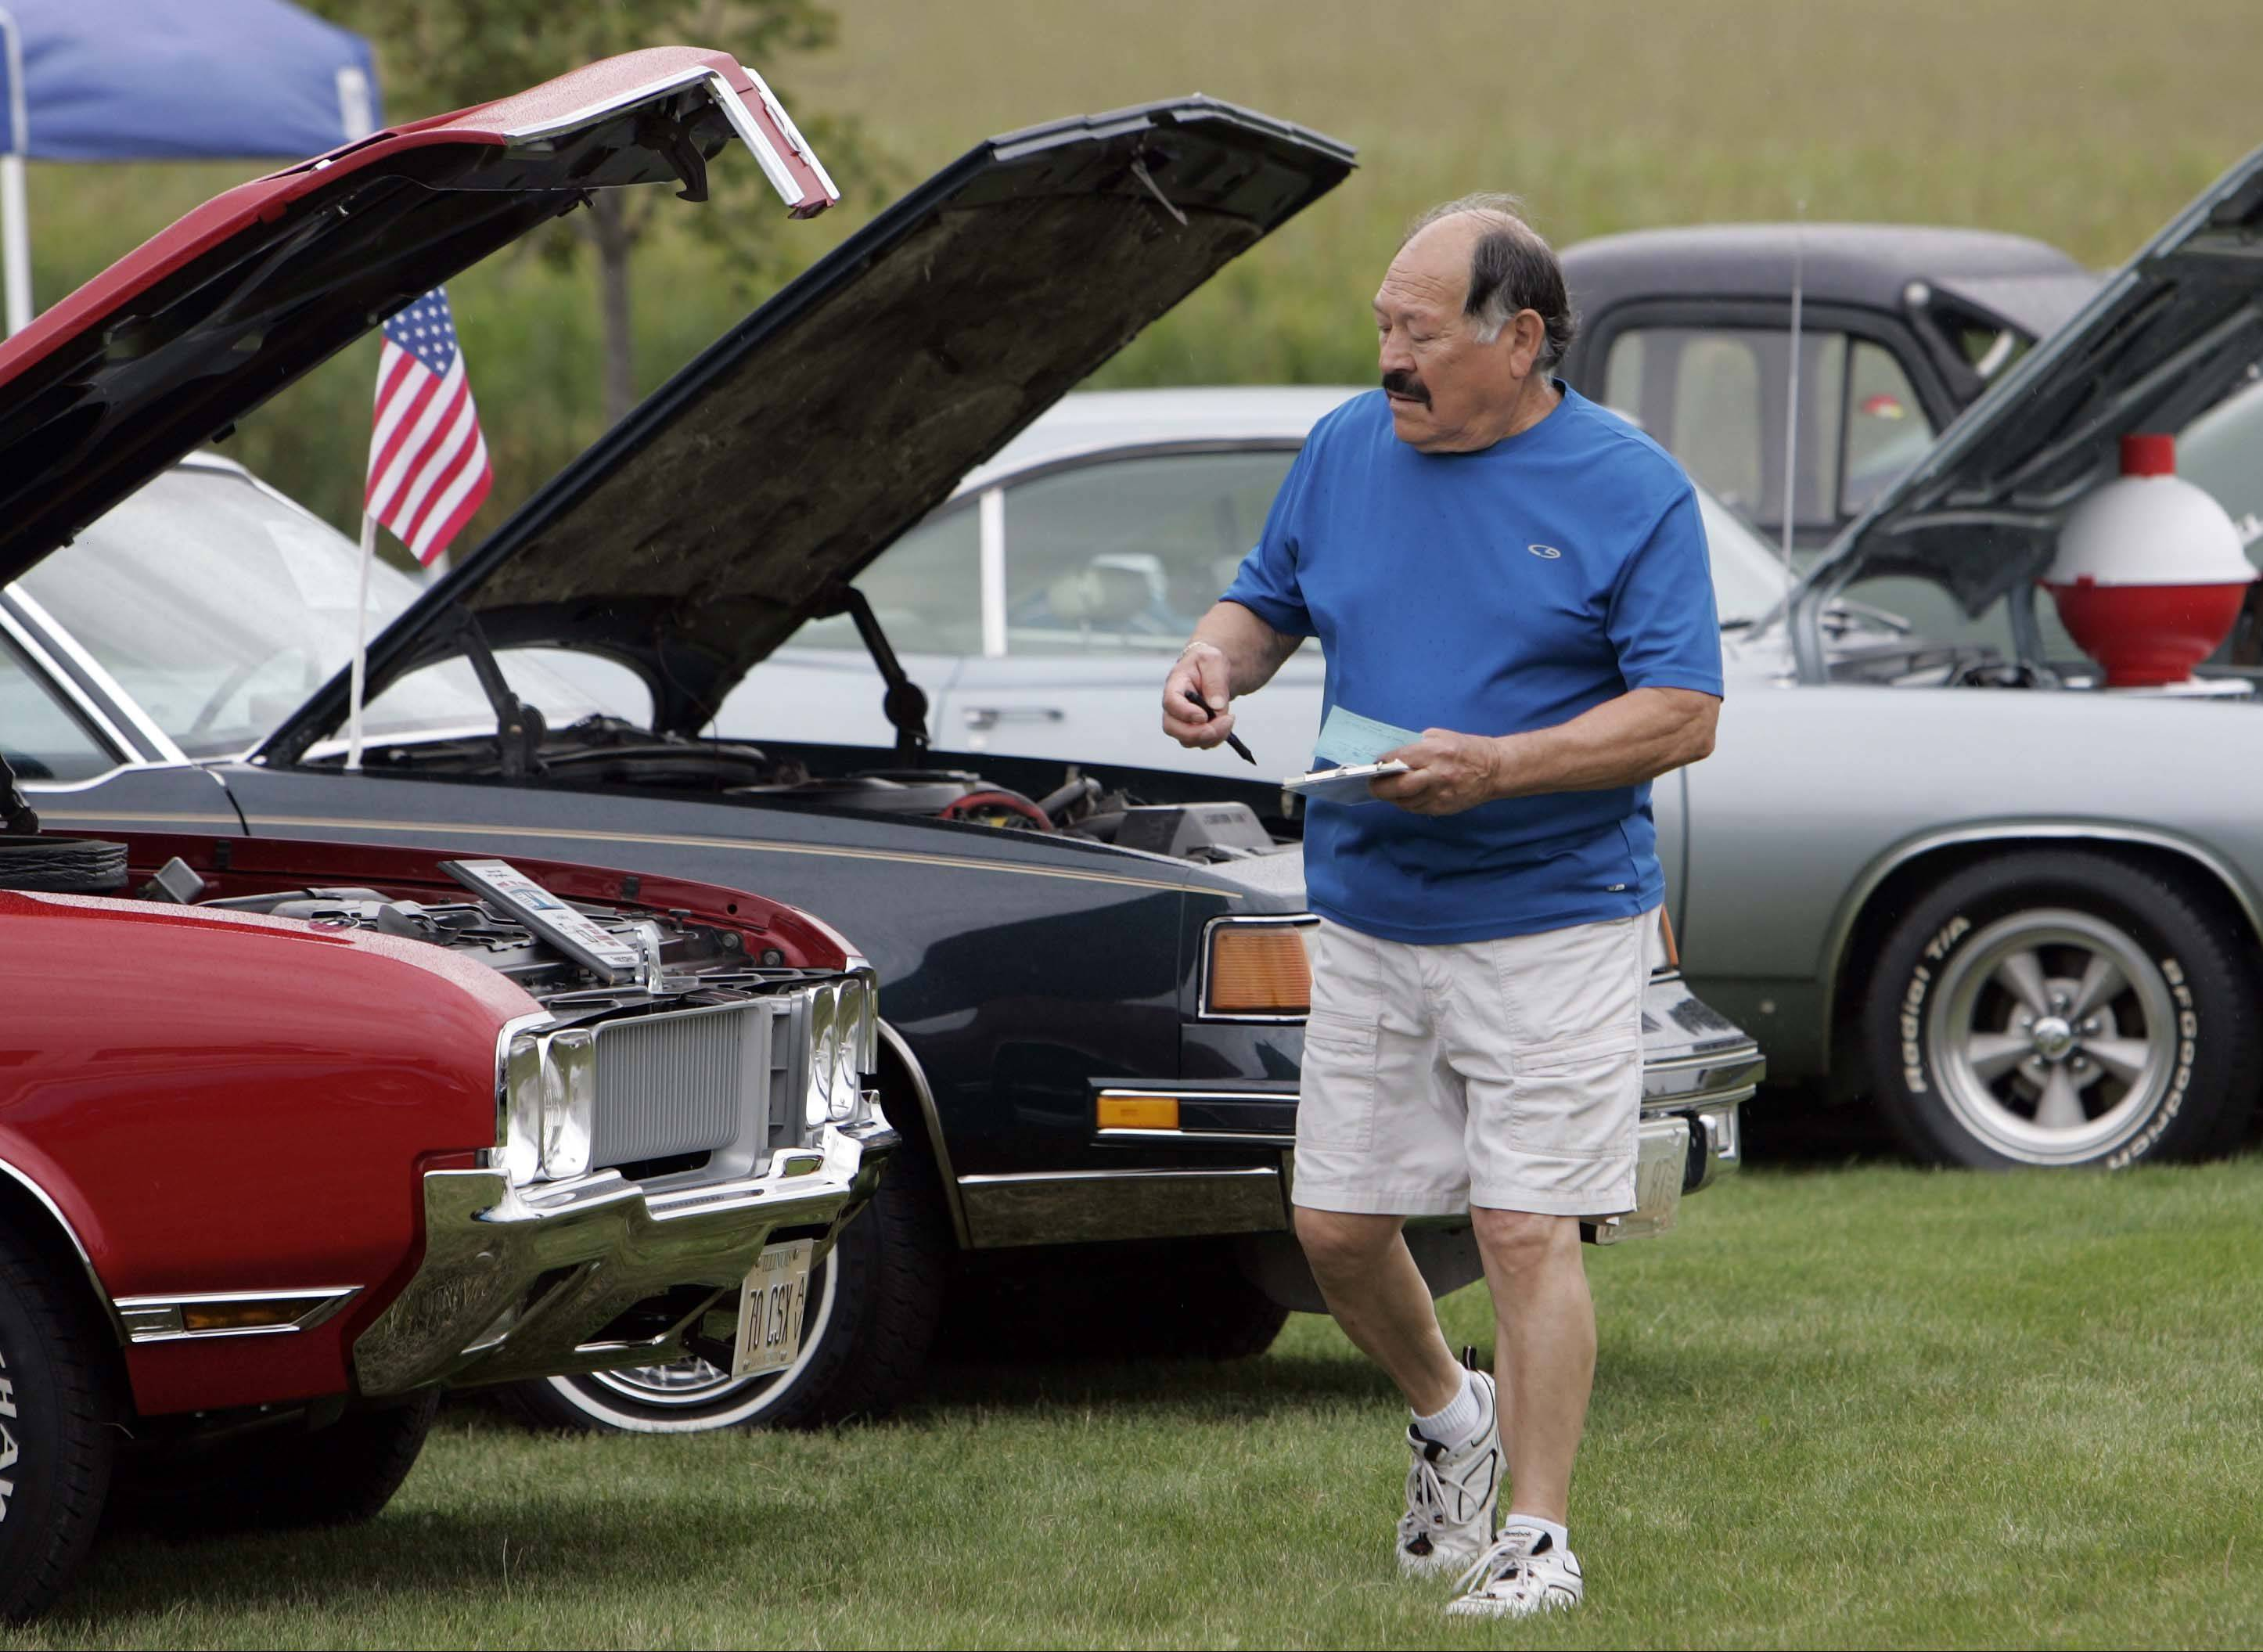 Lee Gomez of St. Charles gets a look at the cars during Kane County Sheriff Pat Perez's sixth annual charity car and motorcycle show Saturday in Elburn. Gomez was showing his six-cylinder 1965 Chevrolet Impala.